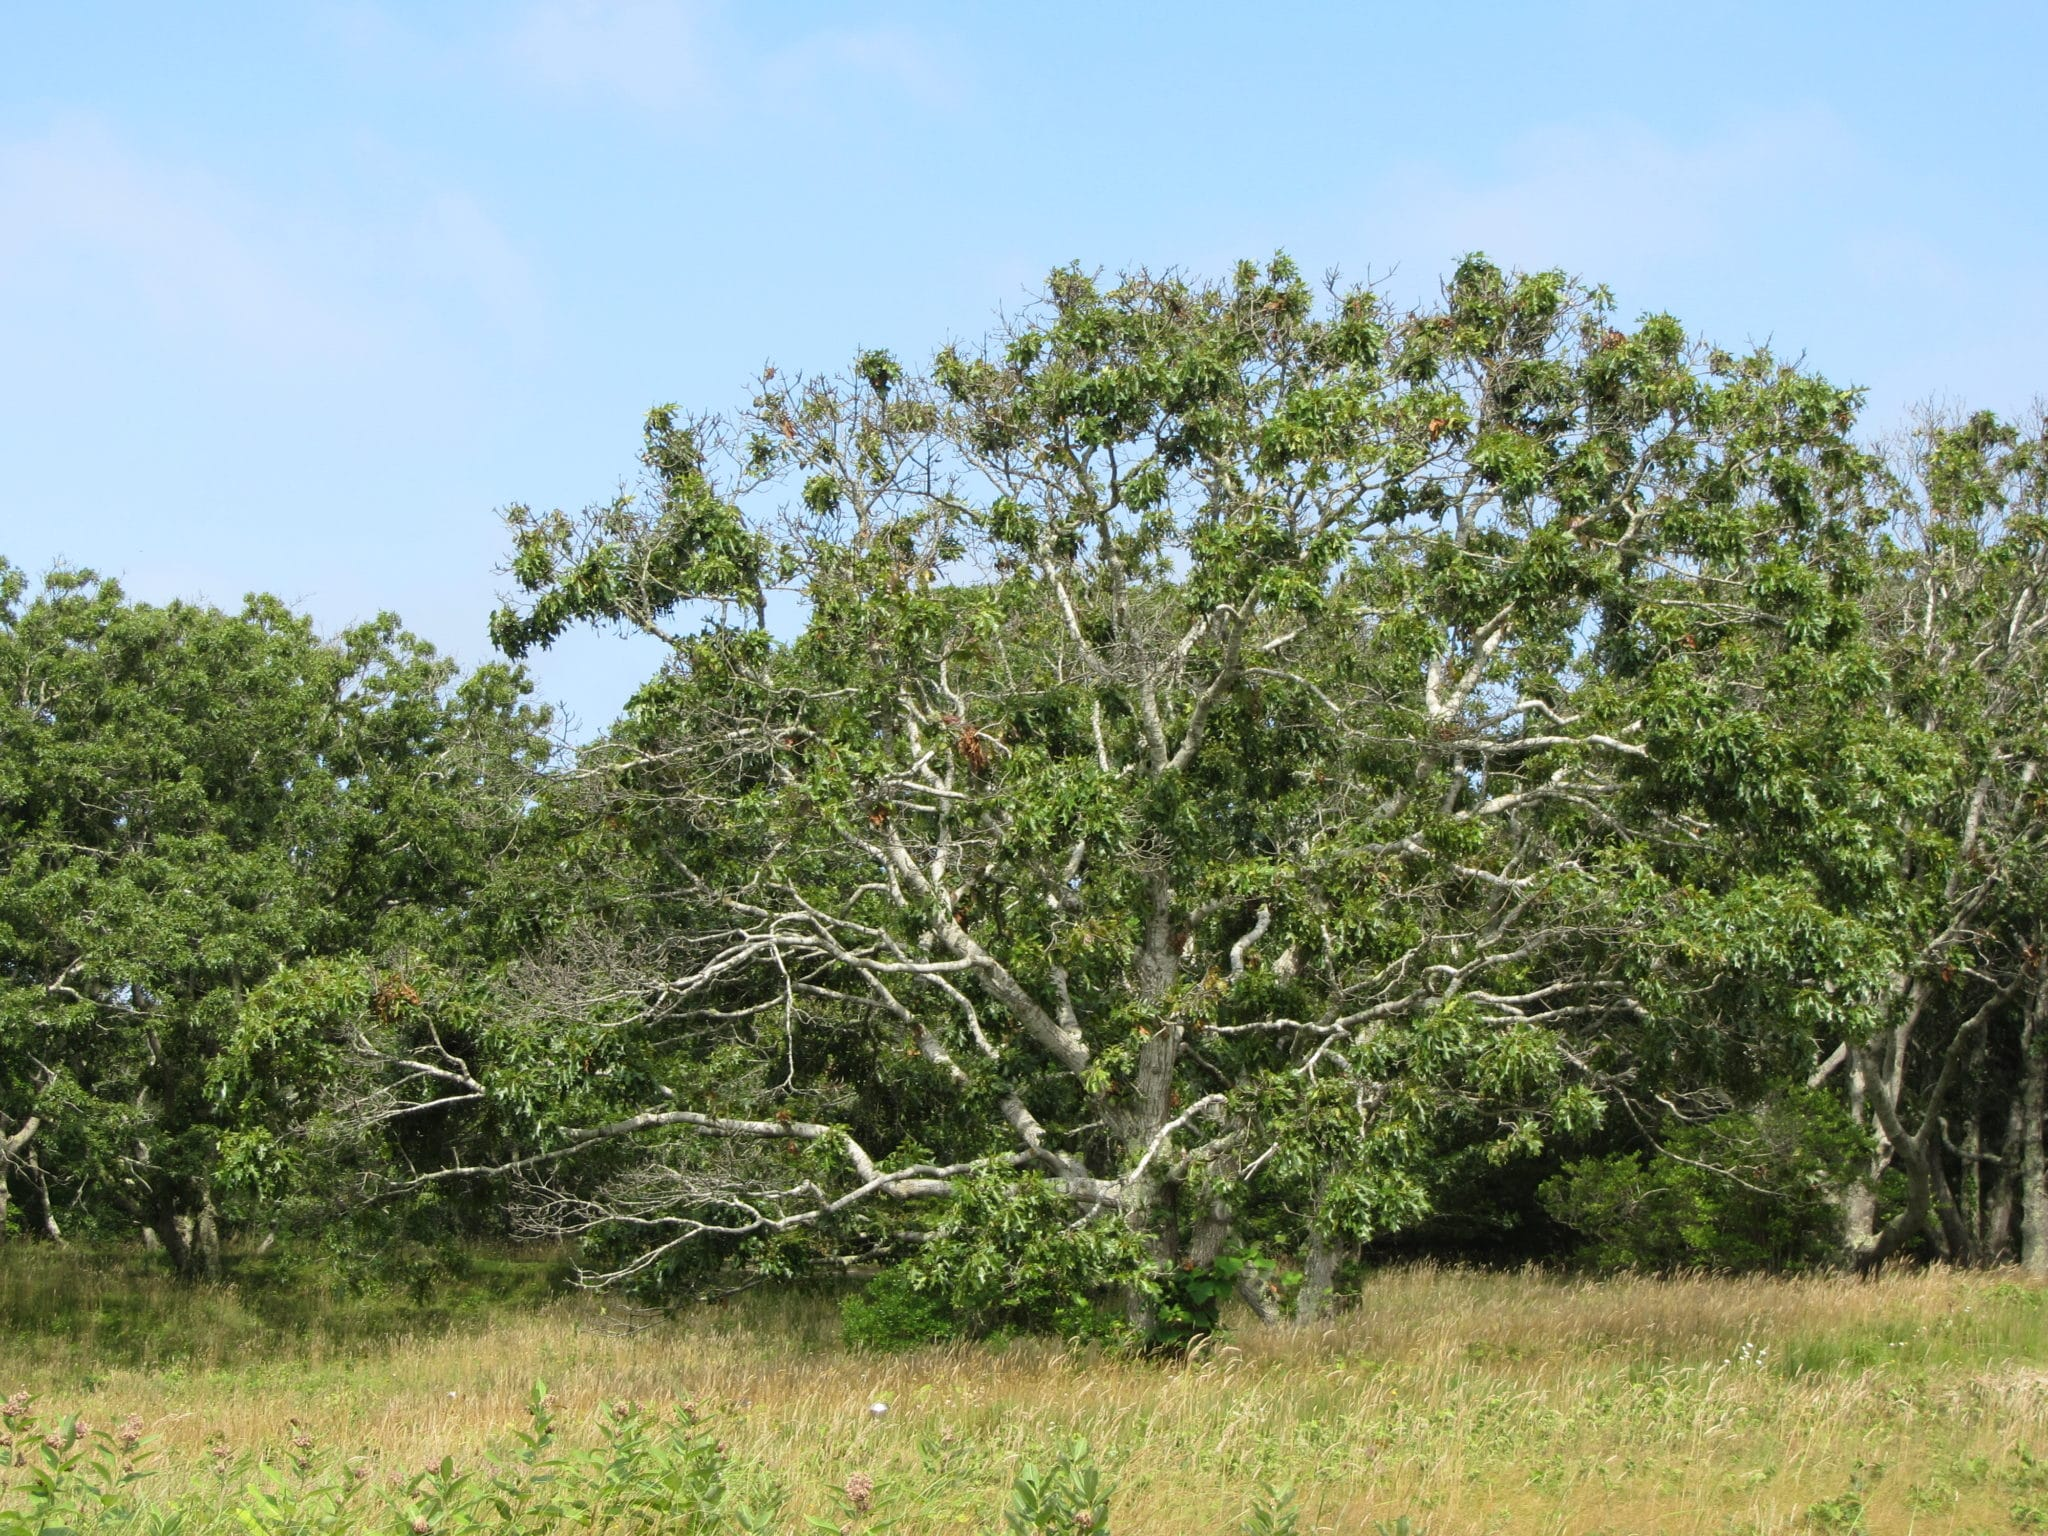 3. Black Oak with Gall Wasp Damage